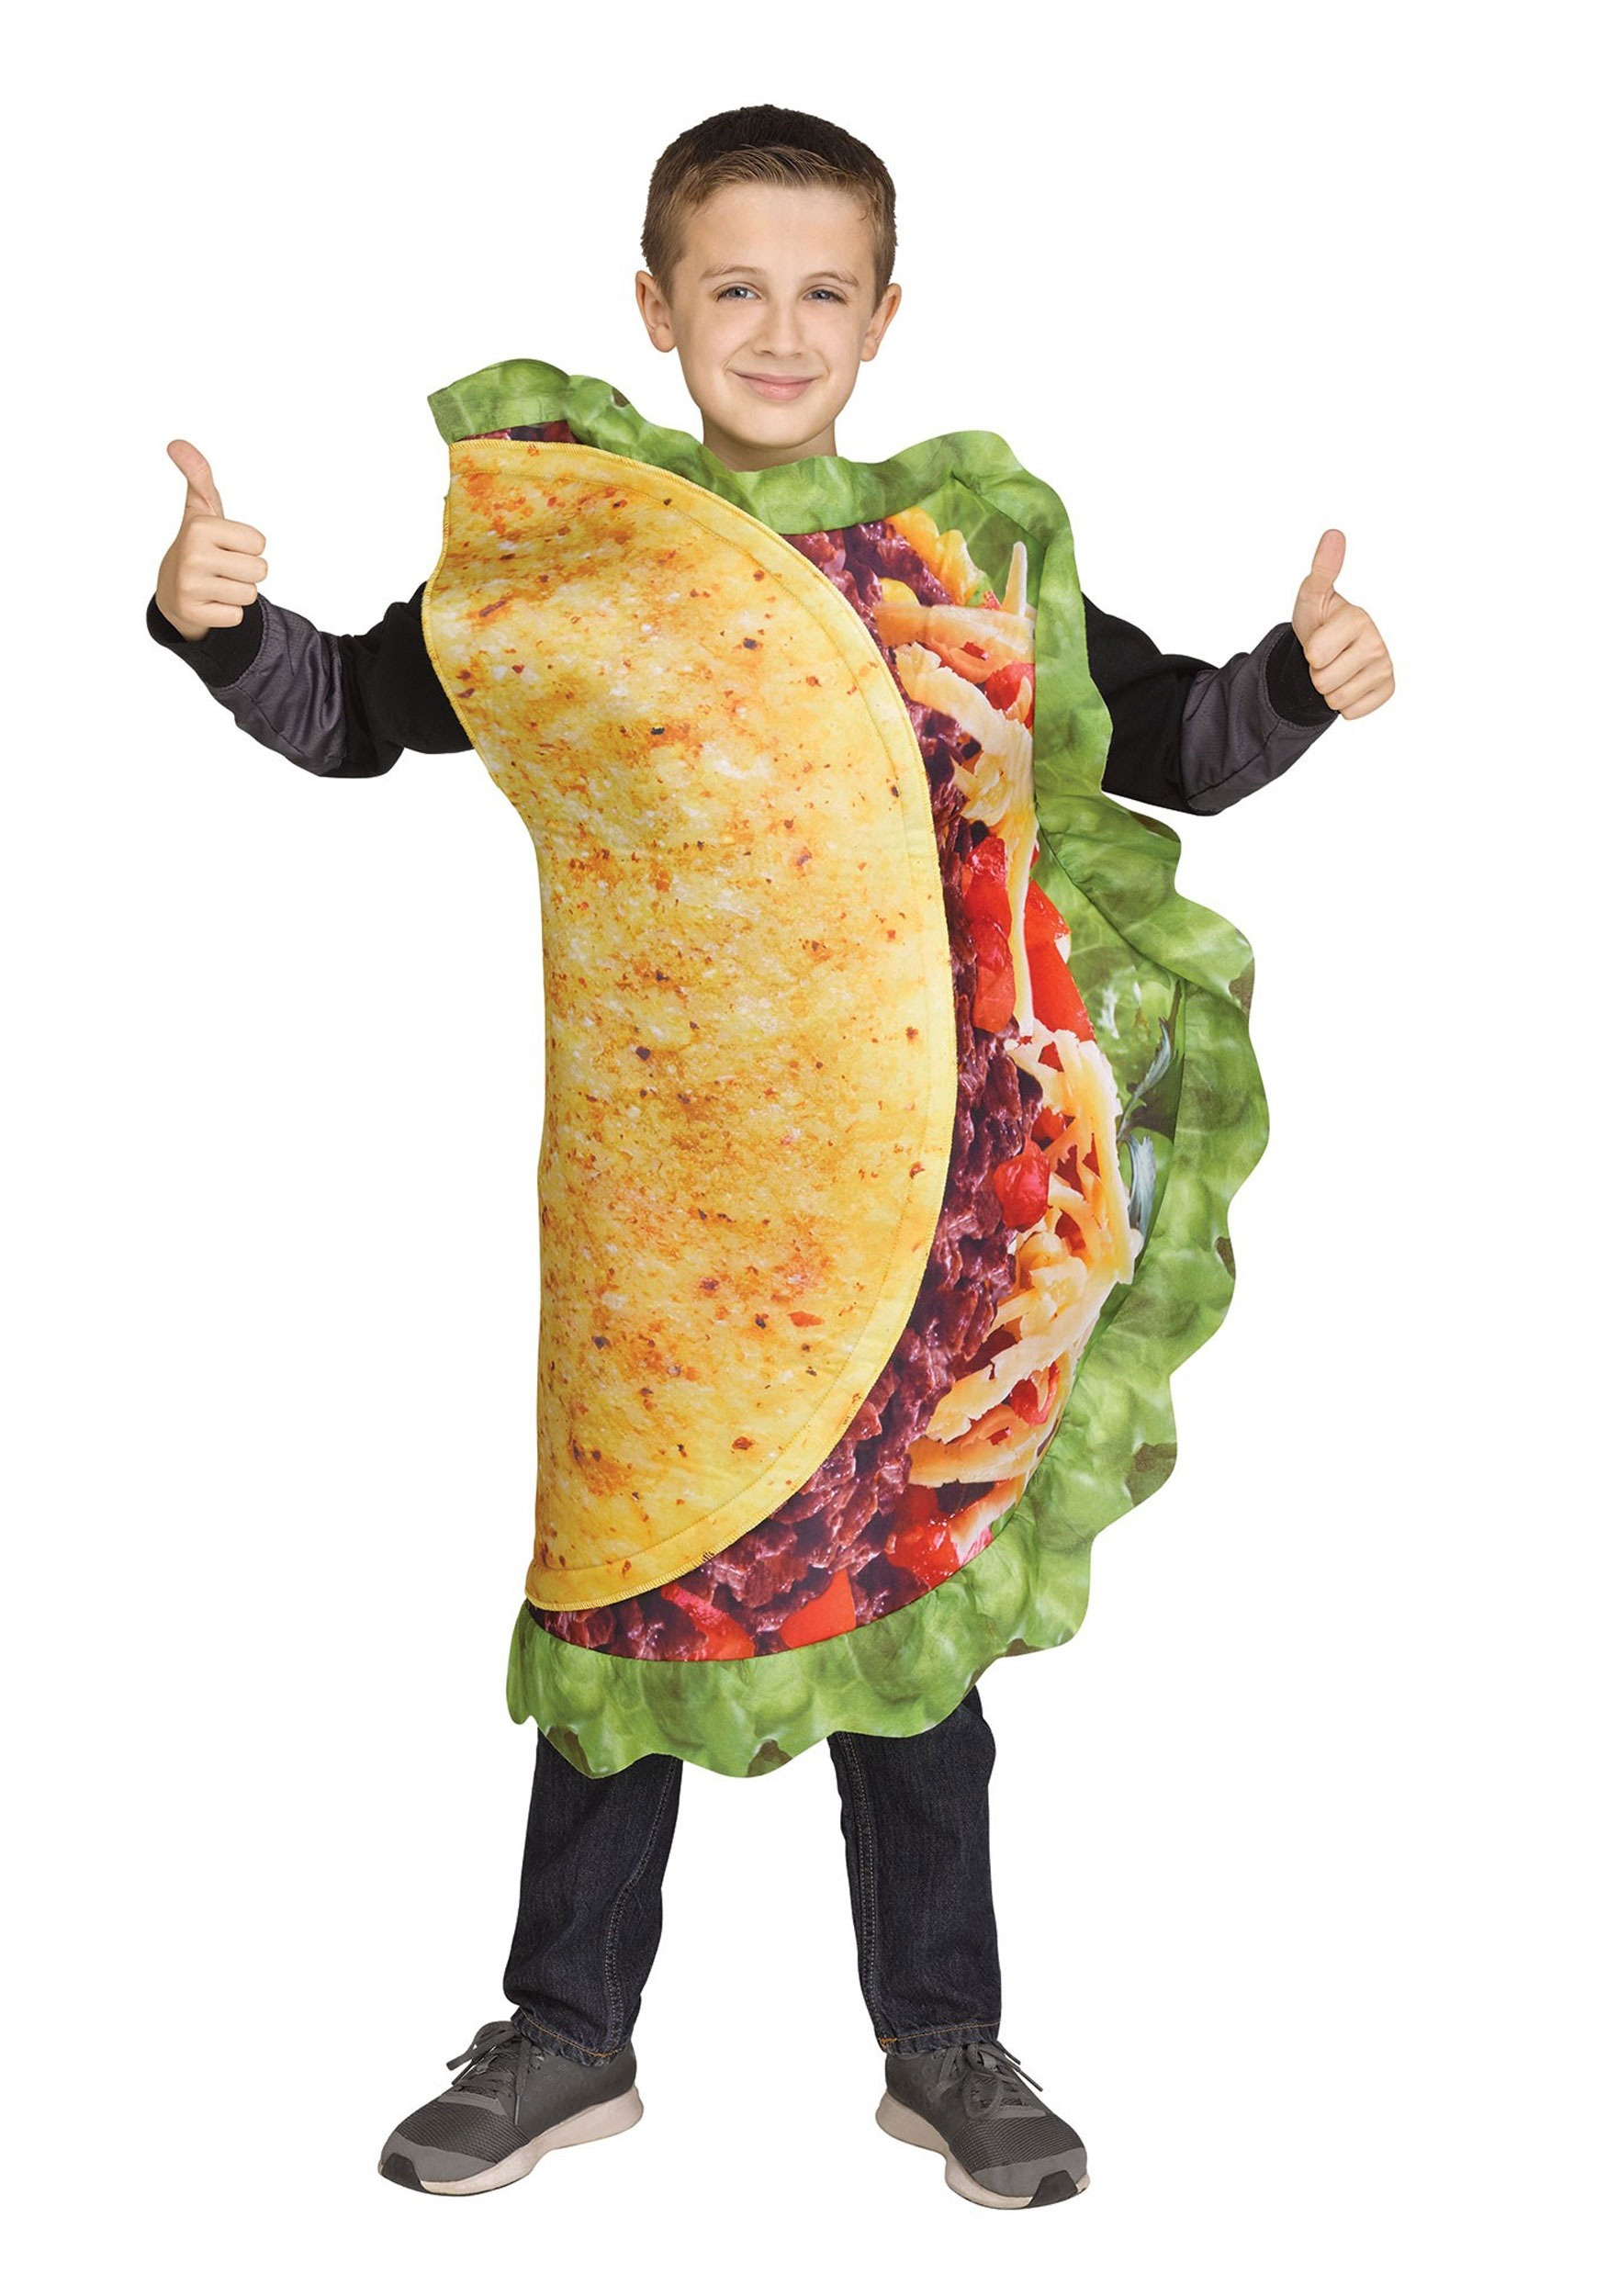 Realistic Taco Costume for Kids